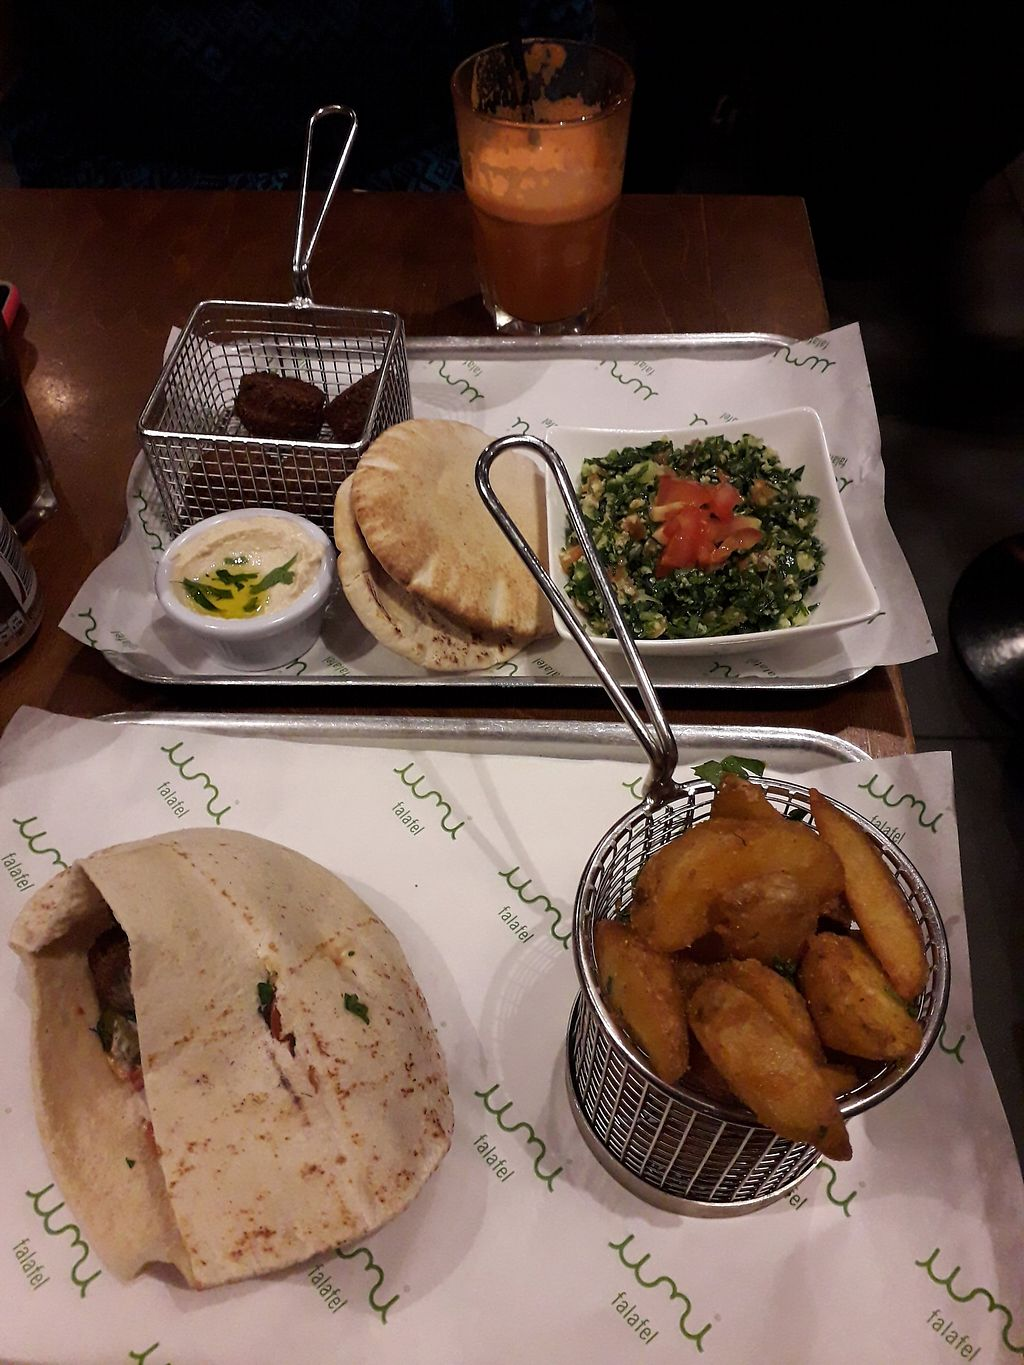 """Photo of Umi Falafel - Dublin 2  by <a href=""""/members/profile/DublinVegan1986"""">DublinVegan1986</a> <br/>Great lunch deals! <br/> February 11, 2018  - <a href='/contact/abuse/image/42422/358095'>Report</a>"""